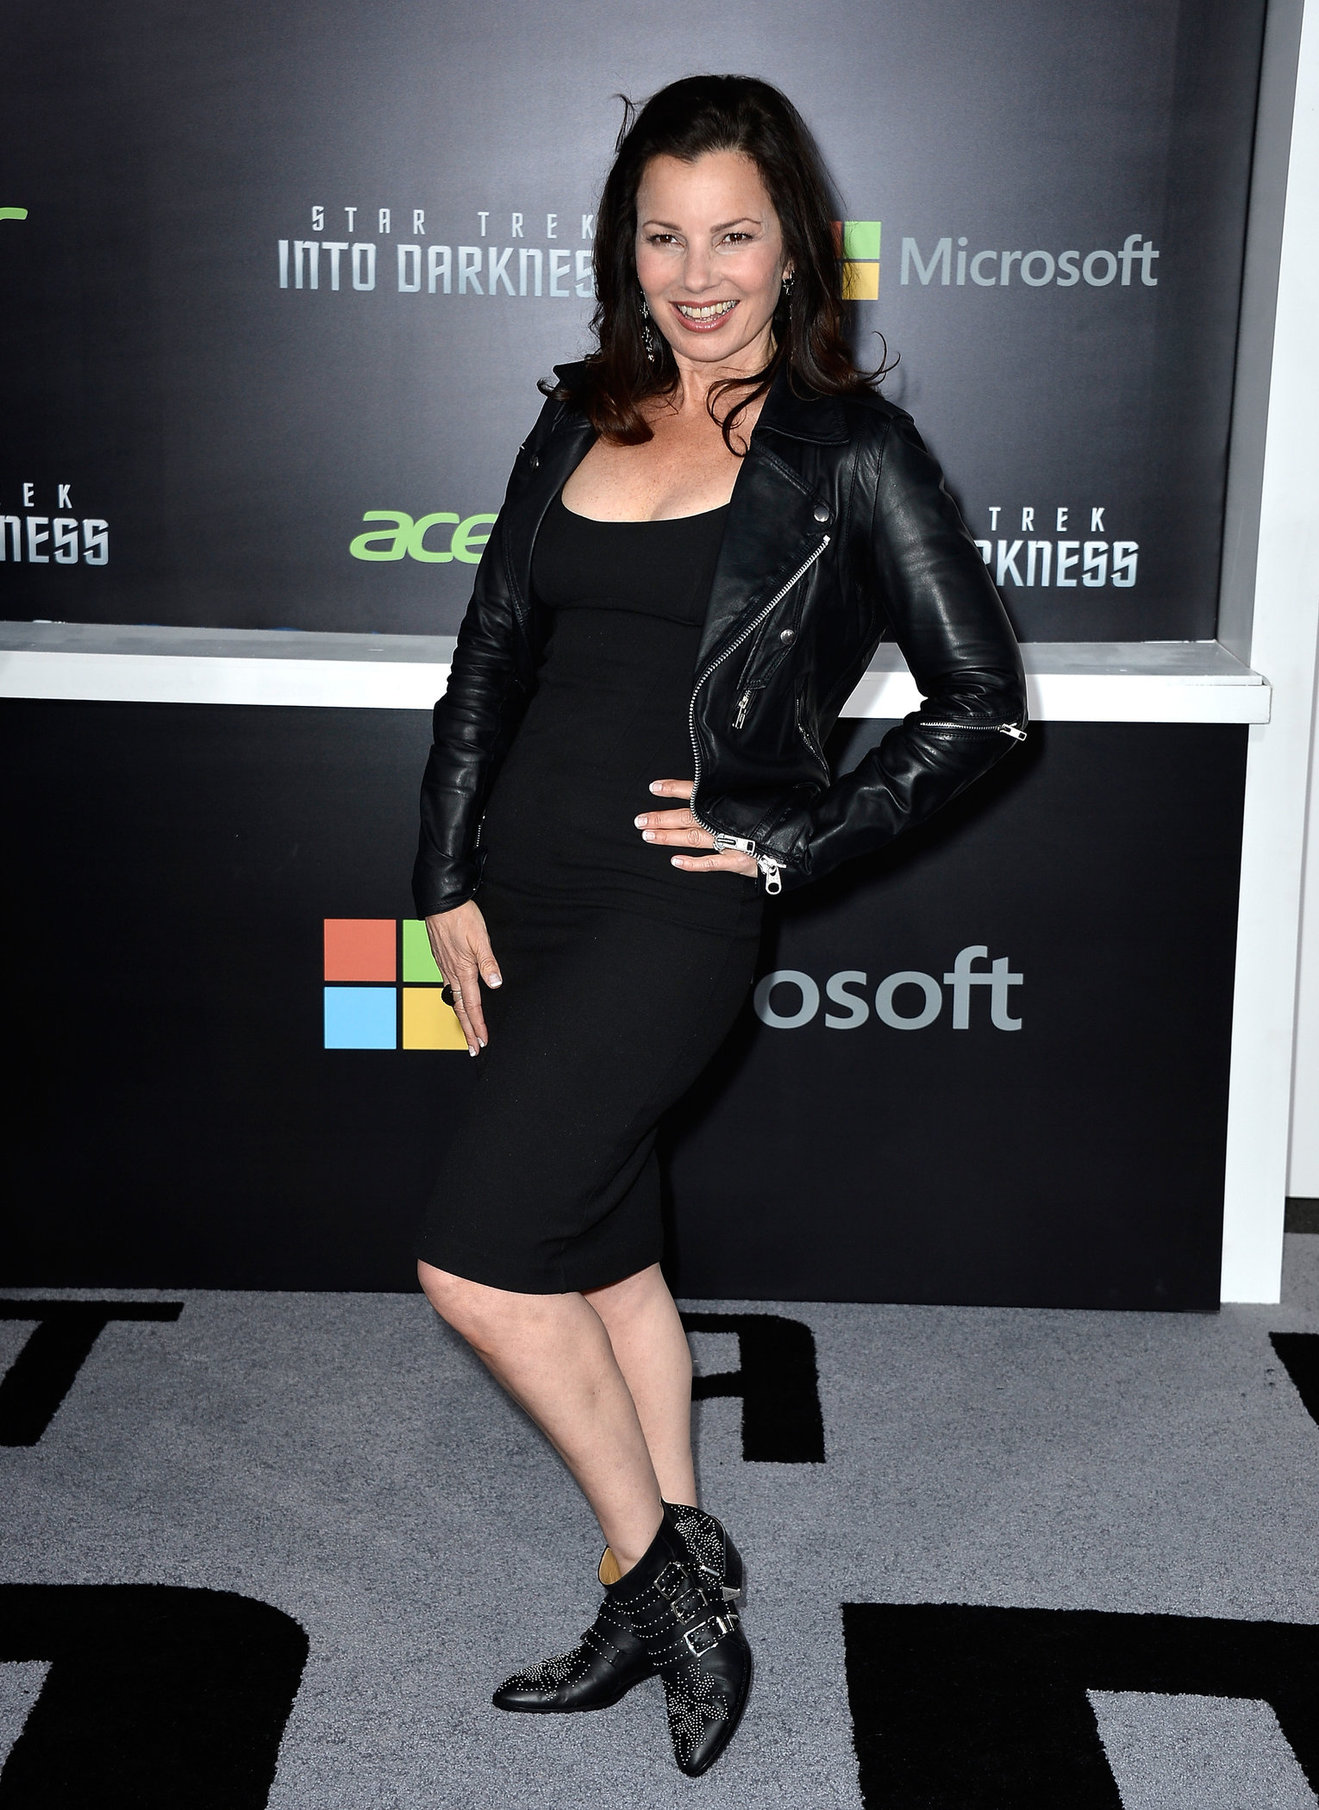 Fran Drescher attending the  Star Trek Into Darkness  Los Angeles Premiere on May 14, 2013